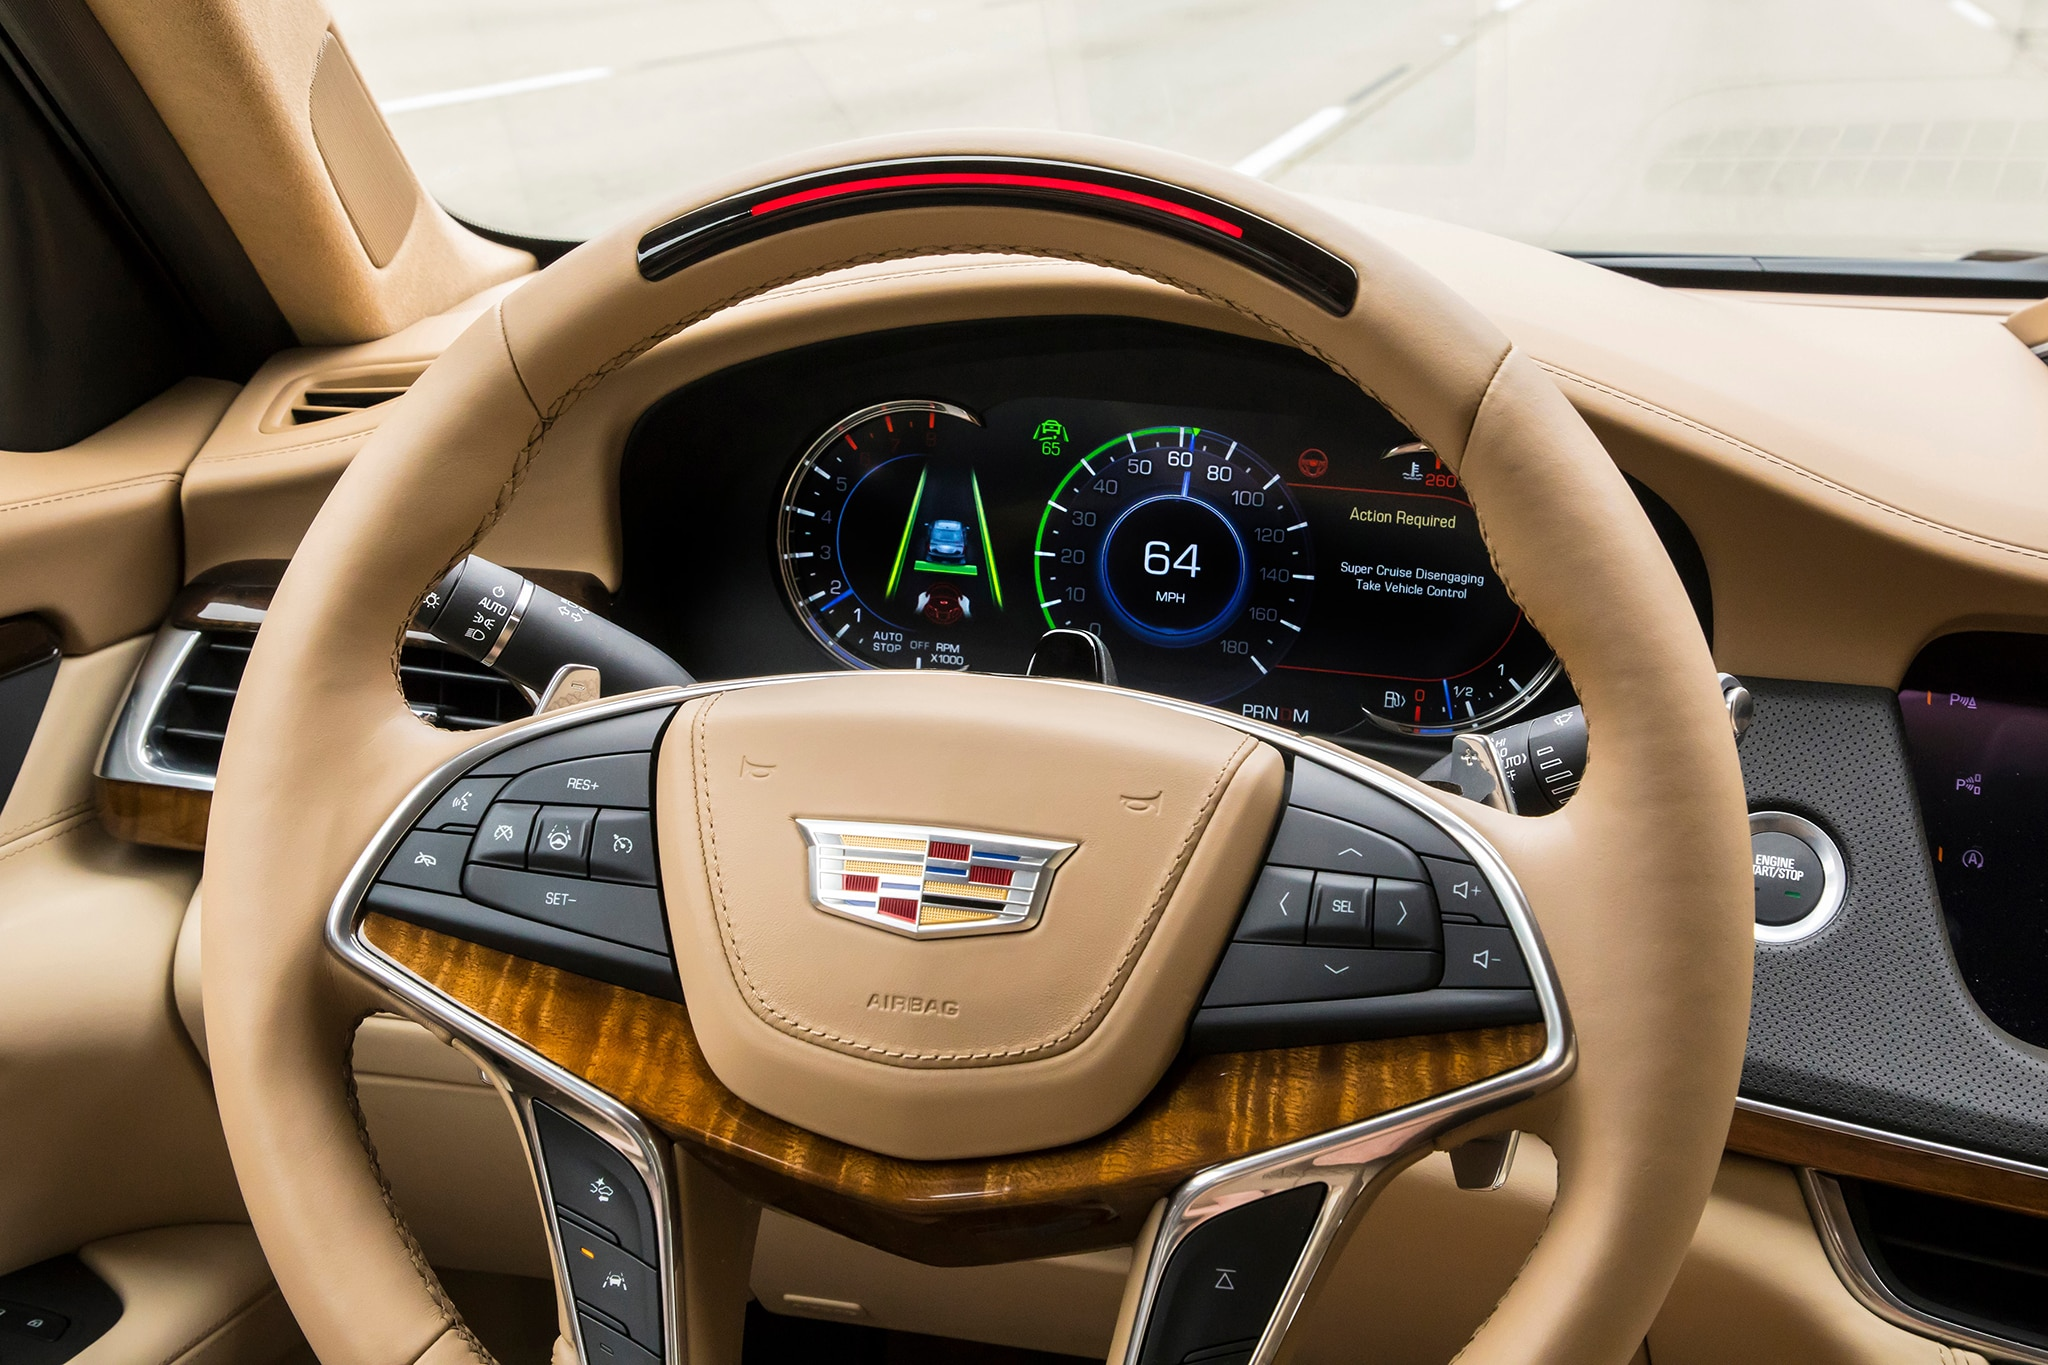 2018-Cadillac-CT6-with-Super-Cruise-14